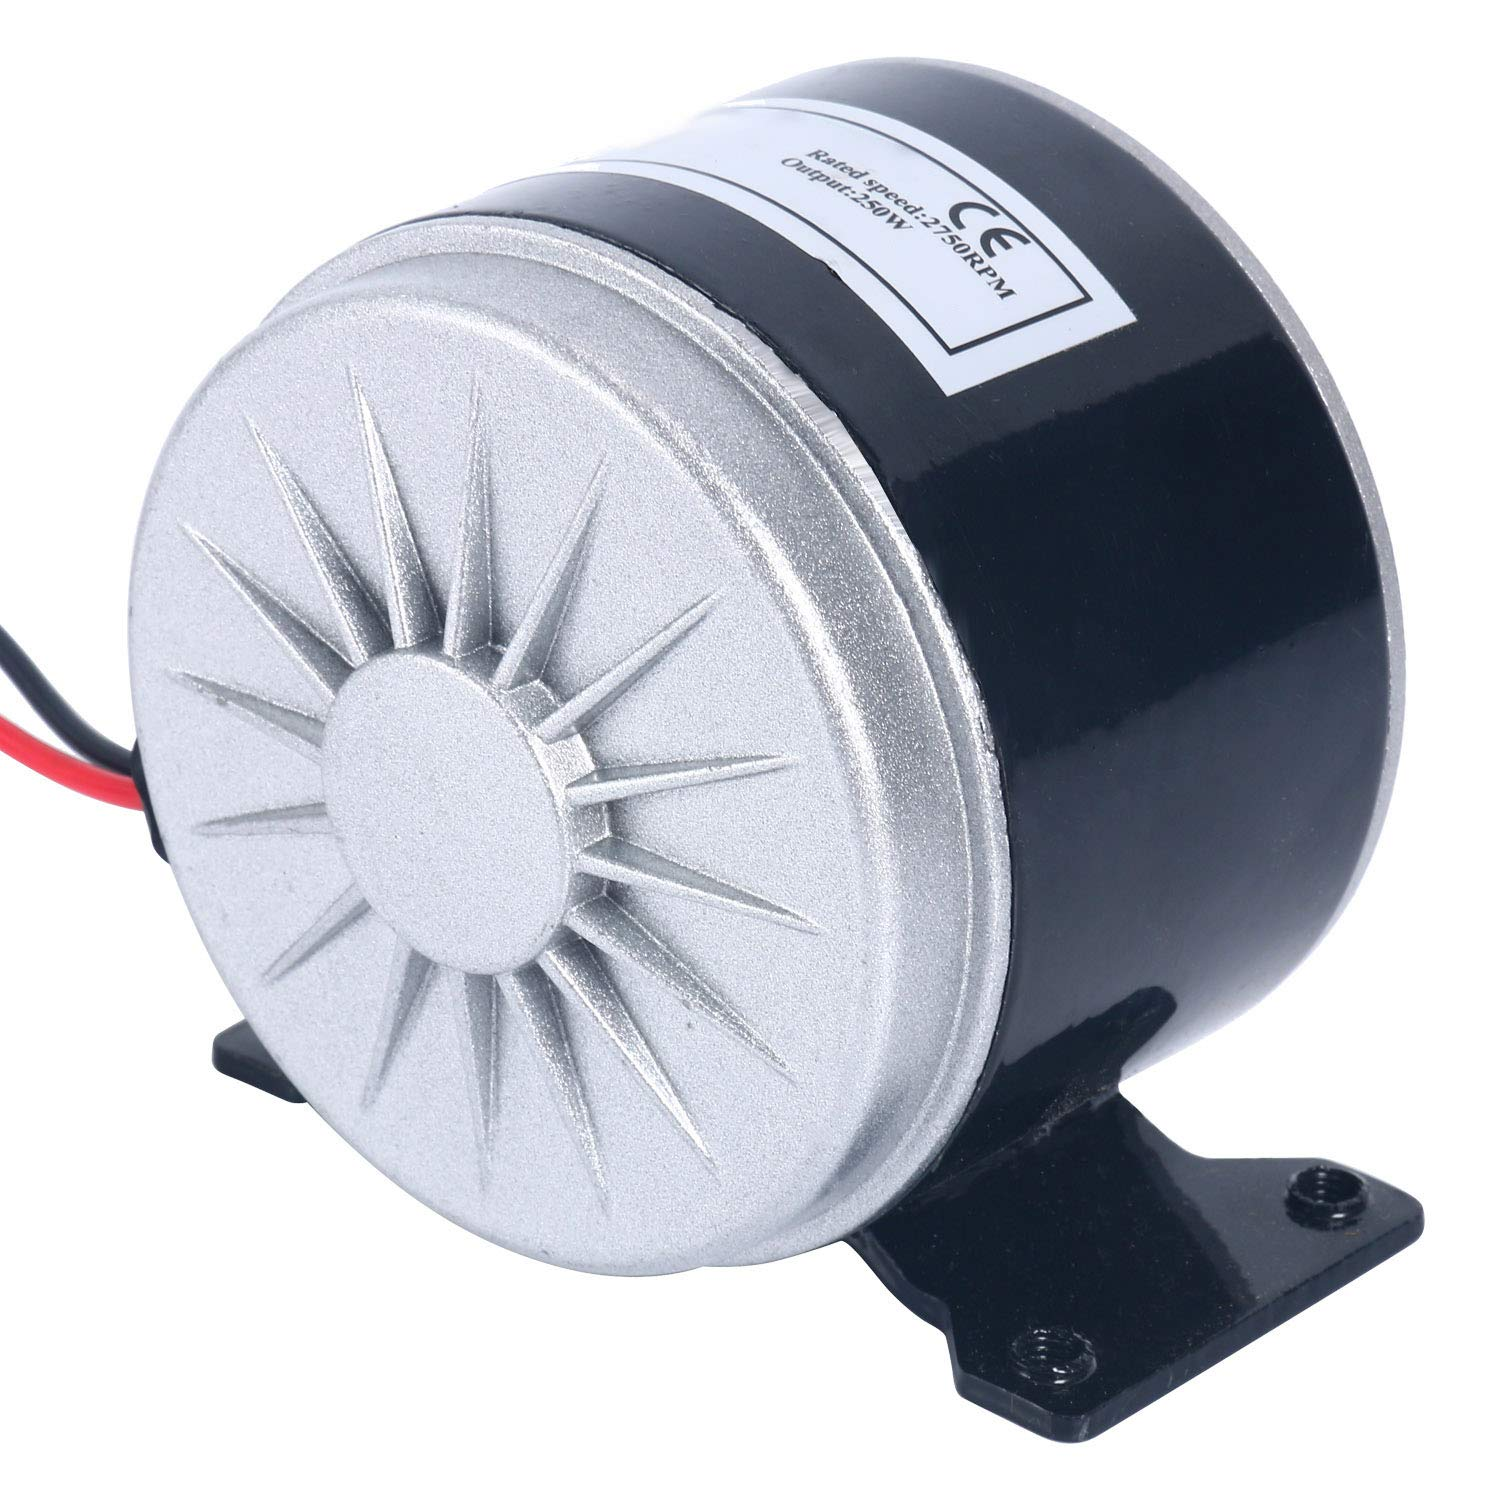 HYDDNice 24V DC Permanent Magnet Electric Motor Generator 250W 2750RPM Electric Motor Brushed for Wind Turbine E Scooter Drive Speed Control by HYDDNice